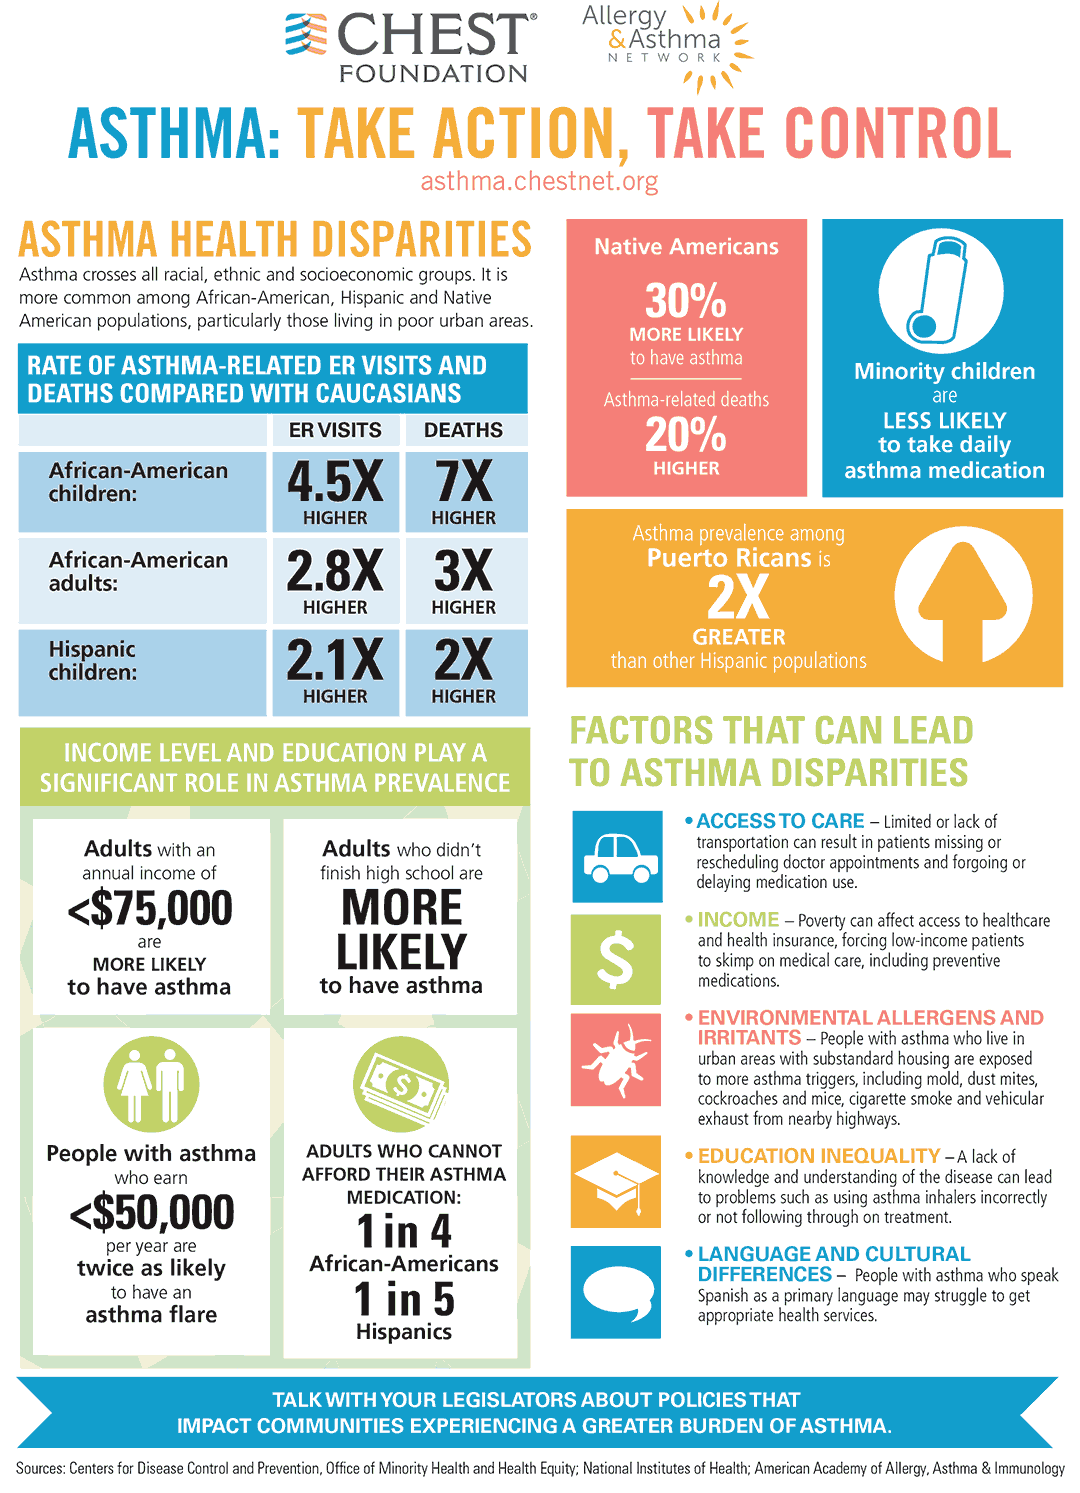 Infographic for asthma health disparities